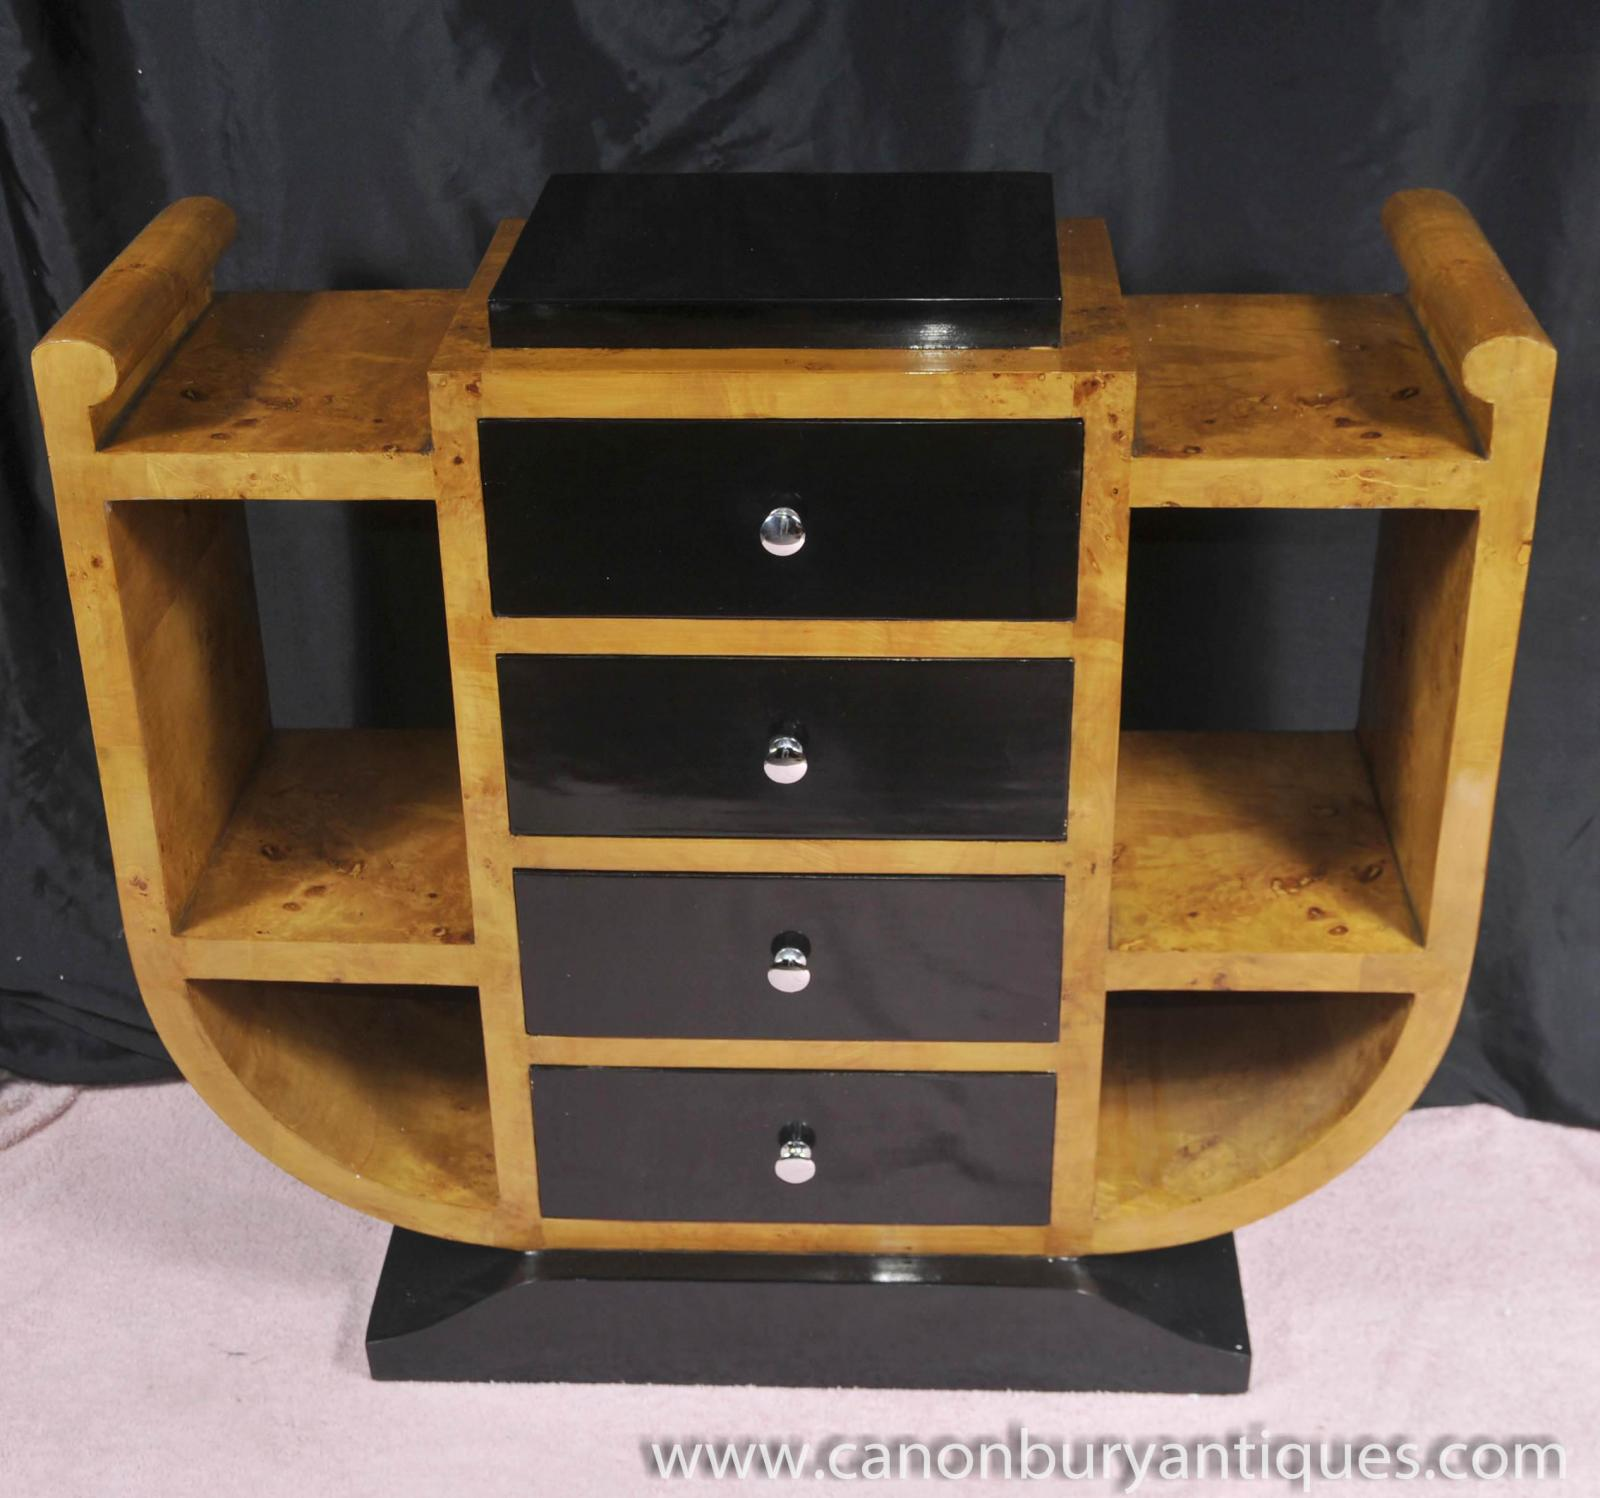 Art deco chest drawers commode 1920s walnut furniture ebay for Commode miroir art deco